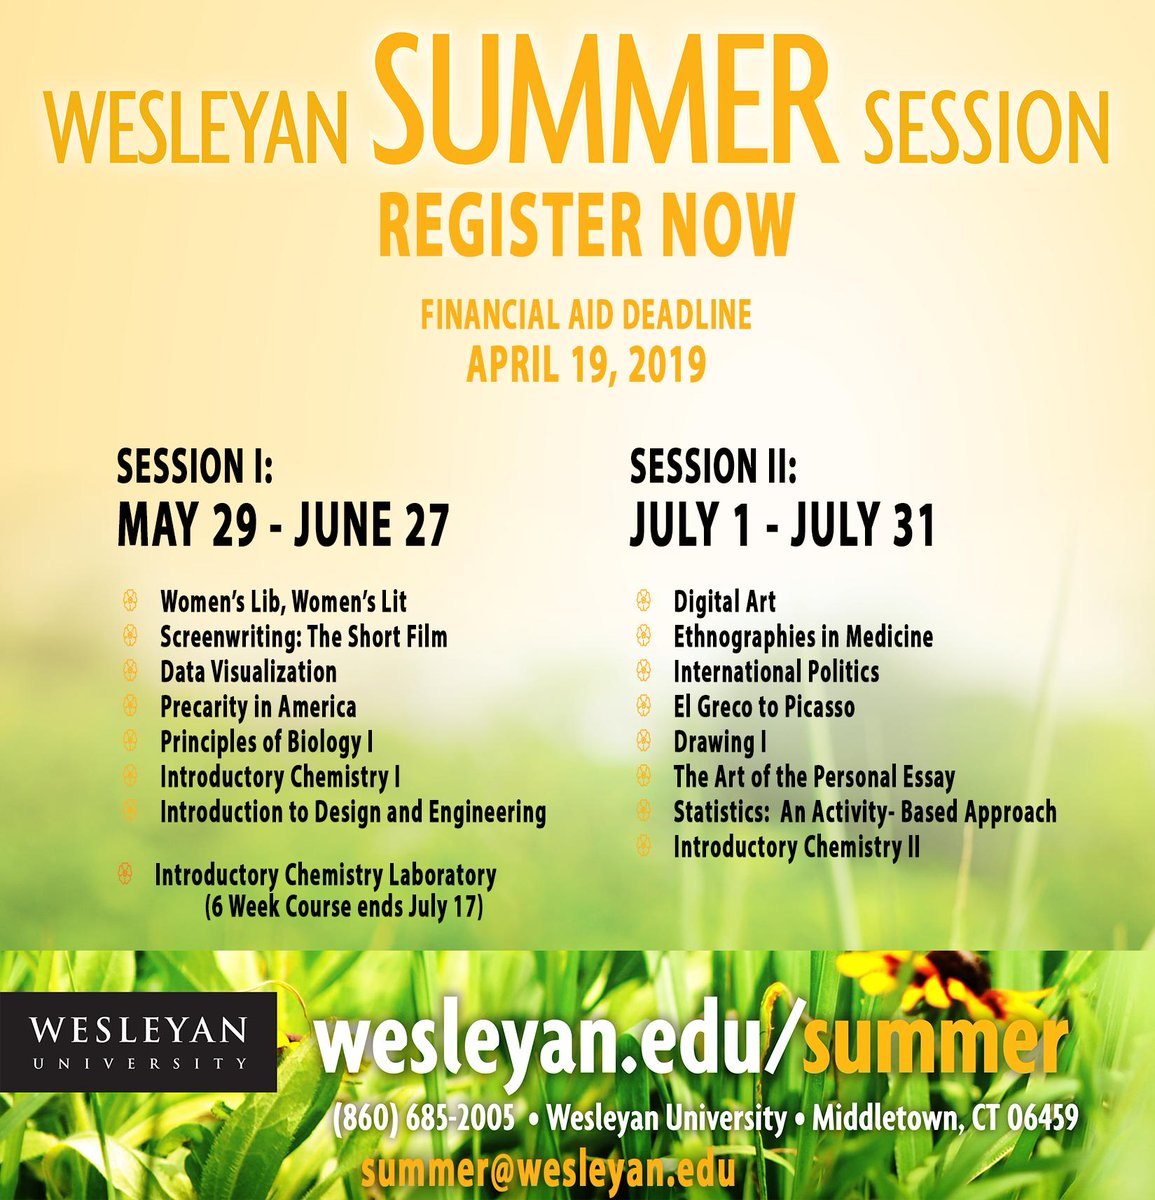 test Twitter Media - Summer Session registration is now open! Enrich your summer by enrolling today. Visit https://t.co/fZEG5sM9ha.  #summeratwes https://t.co/vuNPSUqMU7